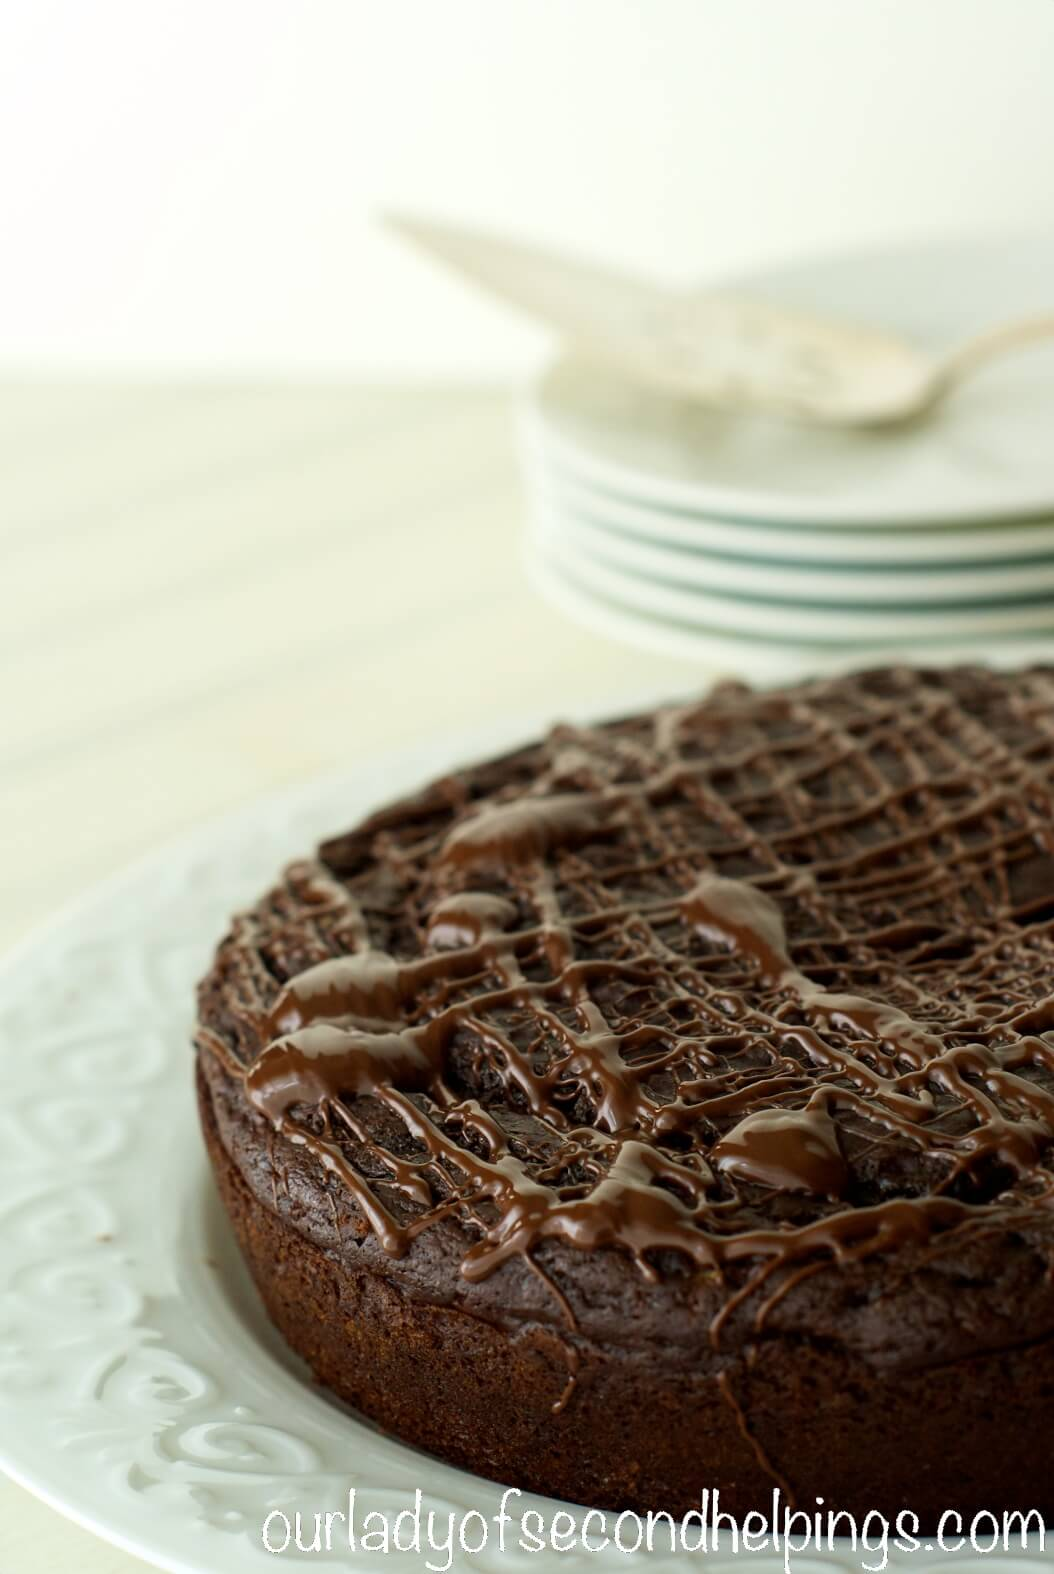 How Long To Wait To Frost Chocolate Cake